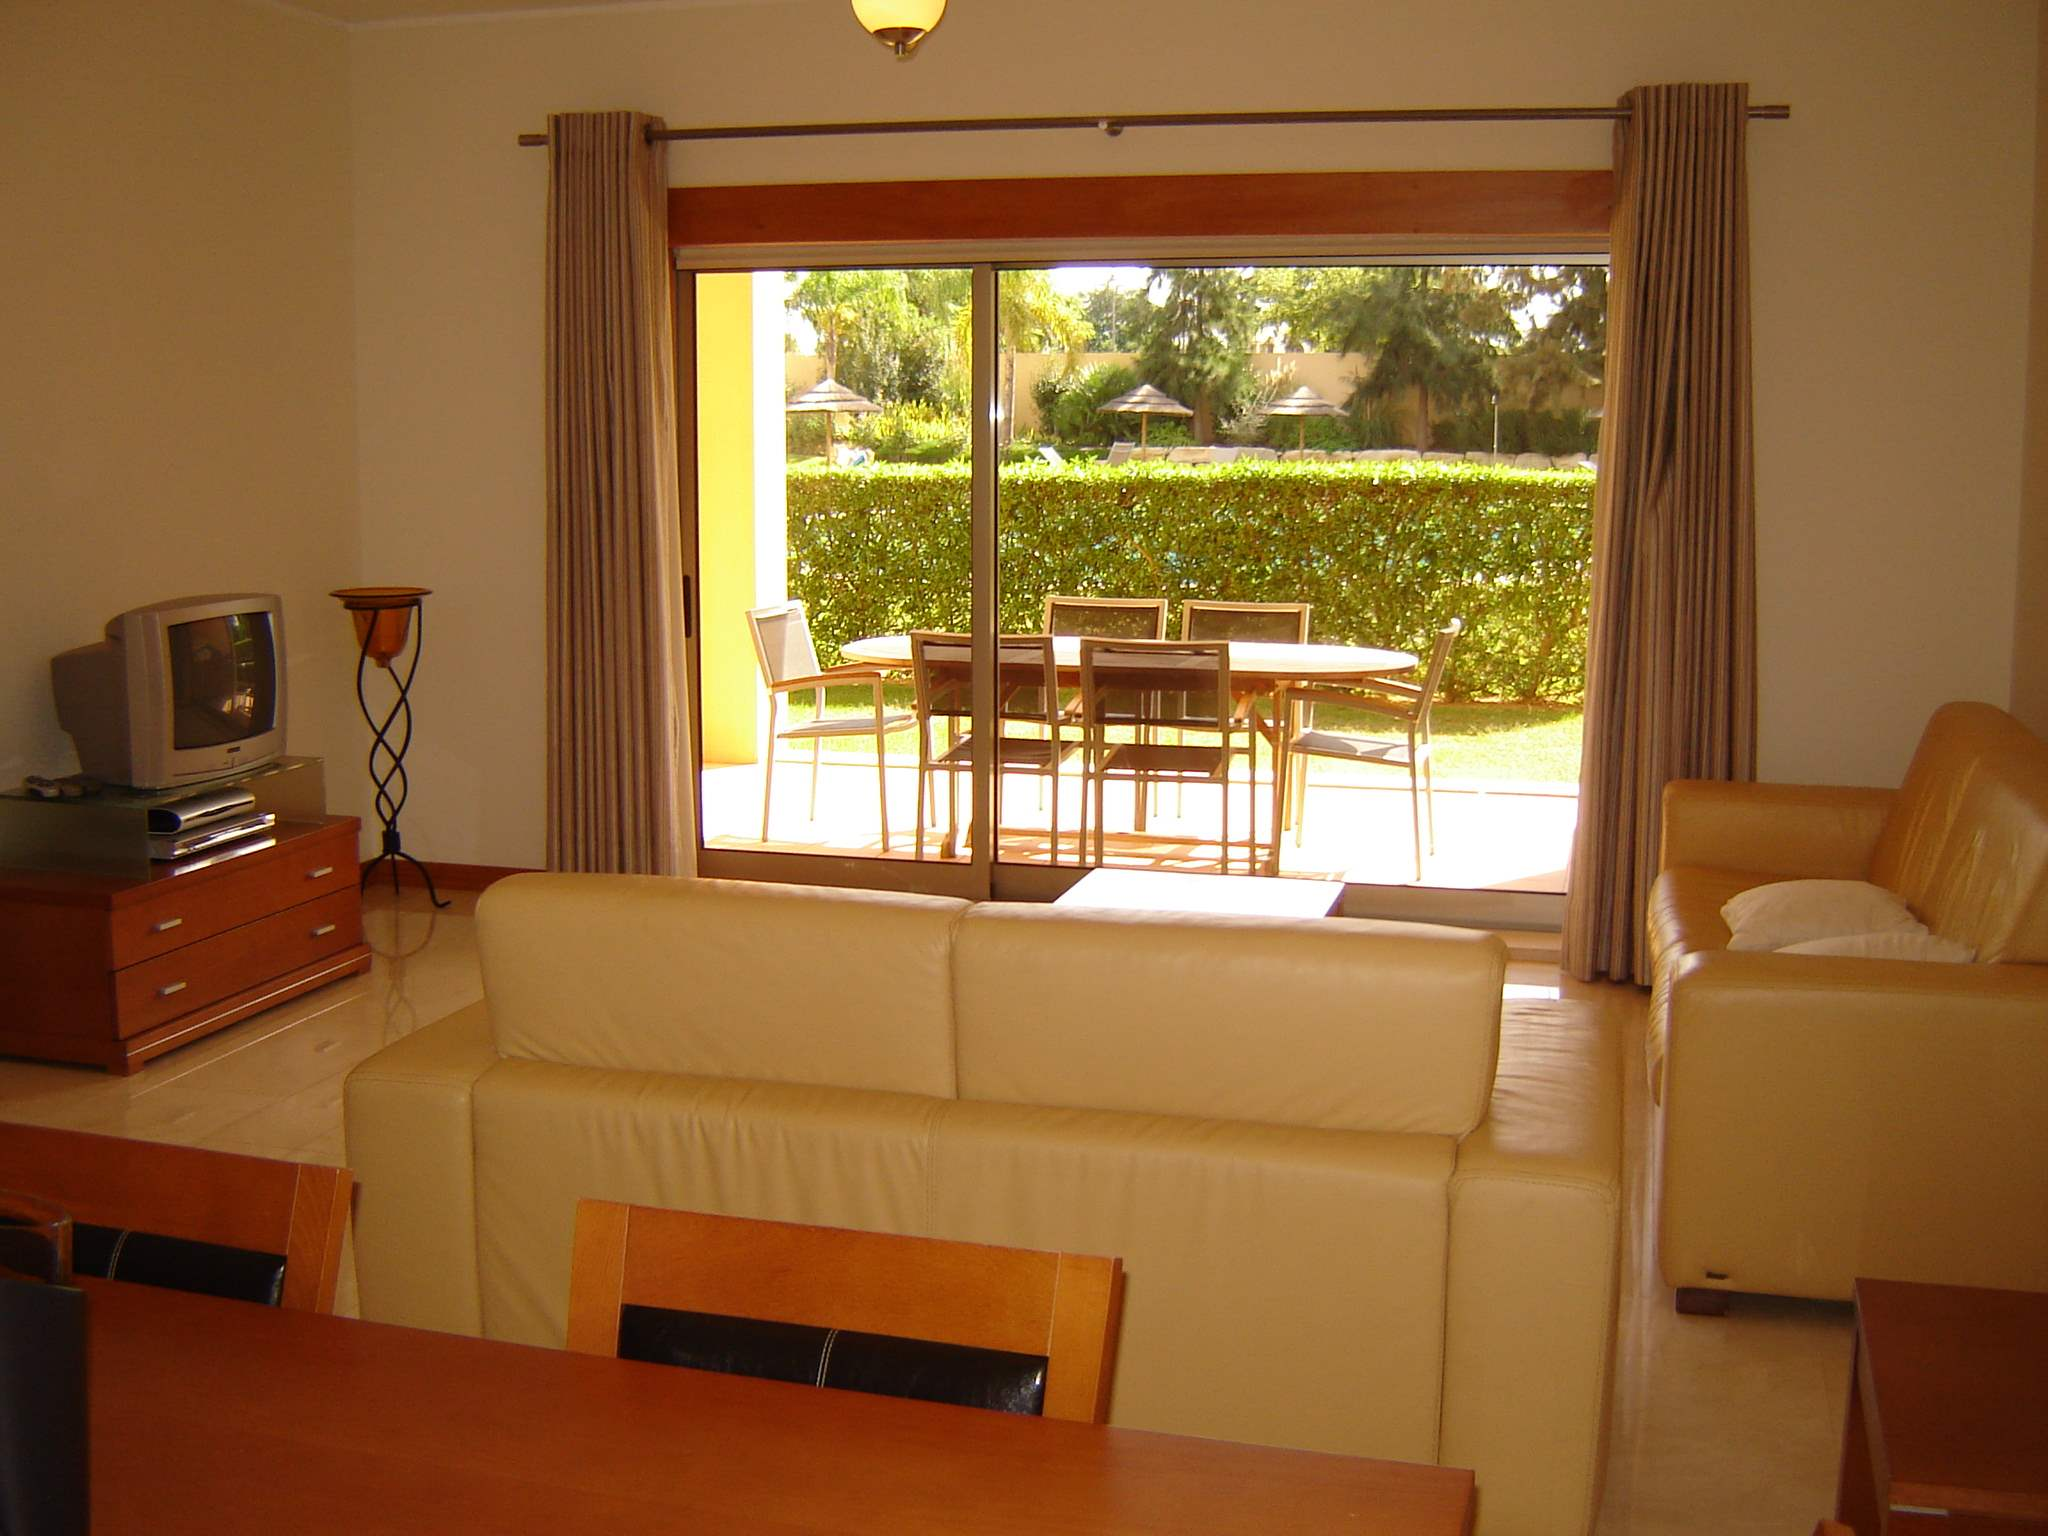 Apartment Majoka, 2 bedroom apartment in Vilamoura Area, Algarve Photo #4